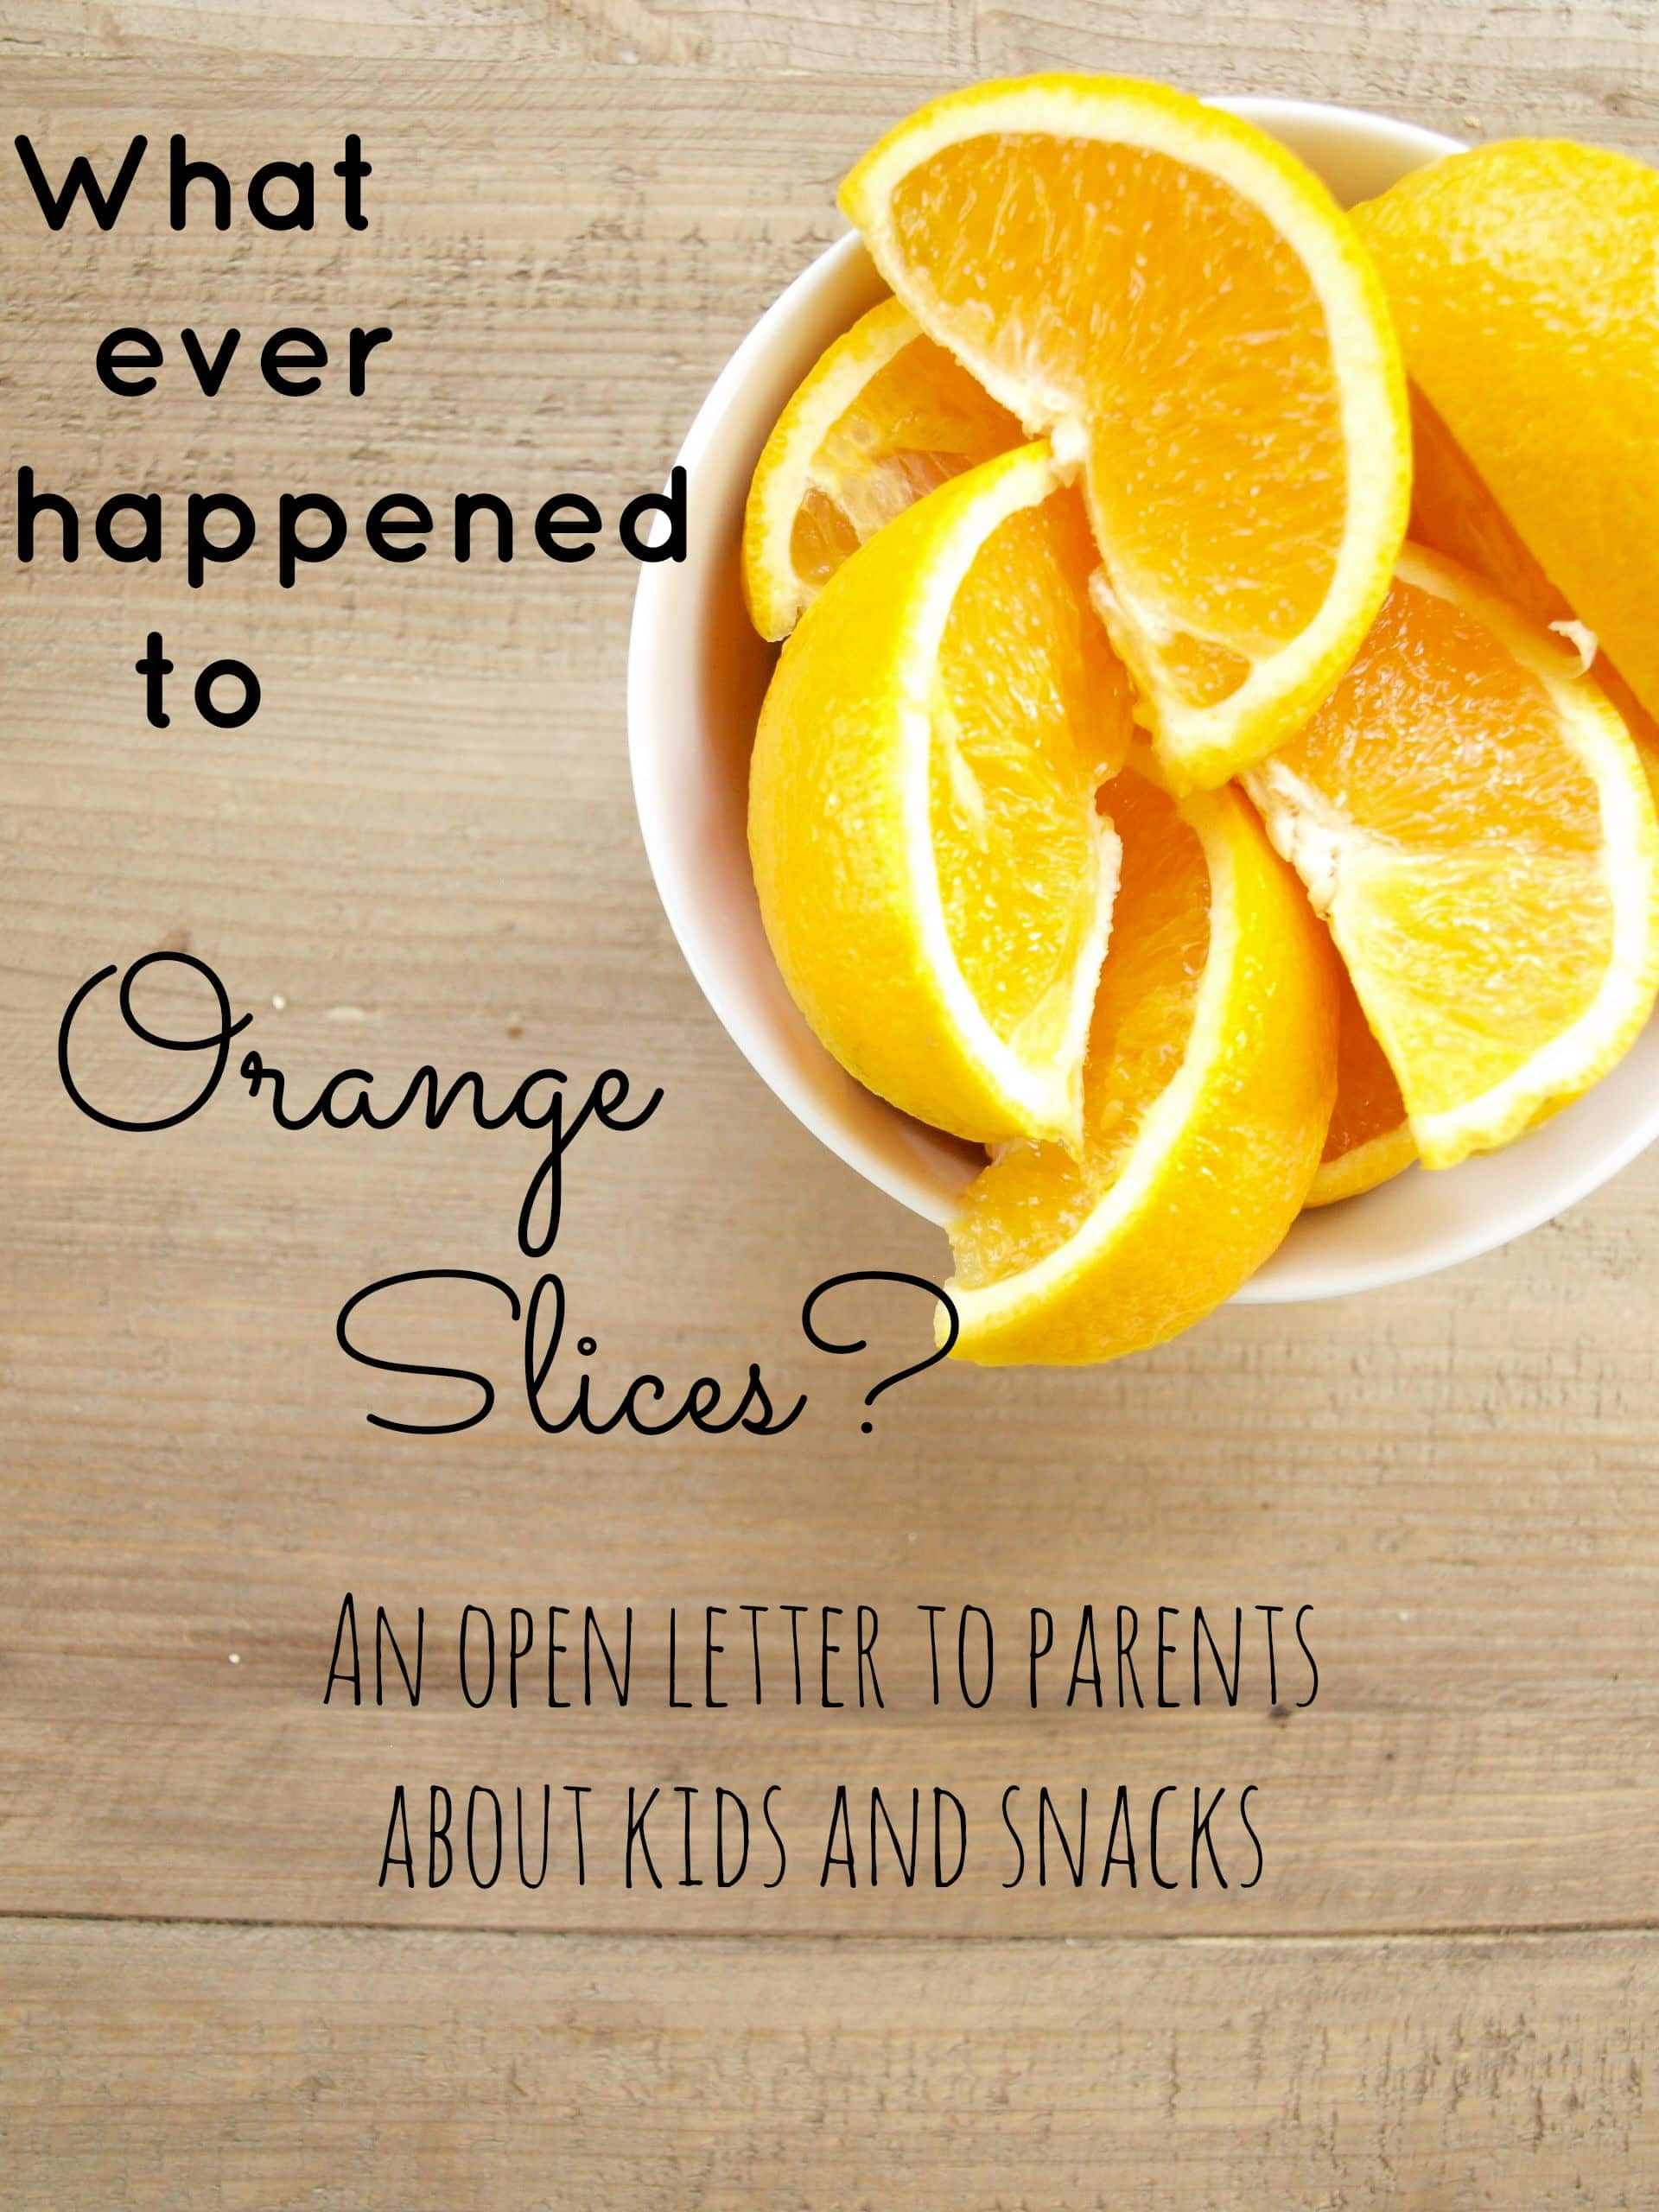 What ever happened to orange slices?  An open letter to parents about kids and snacks